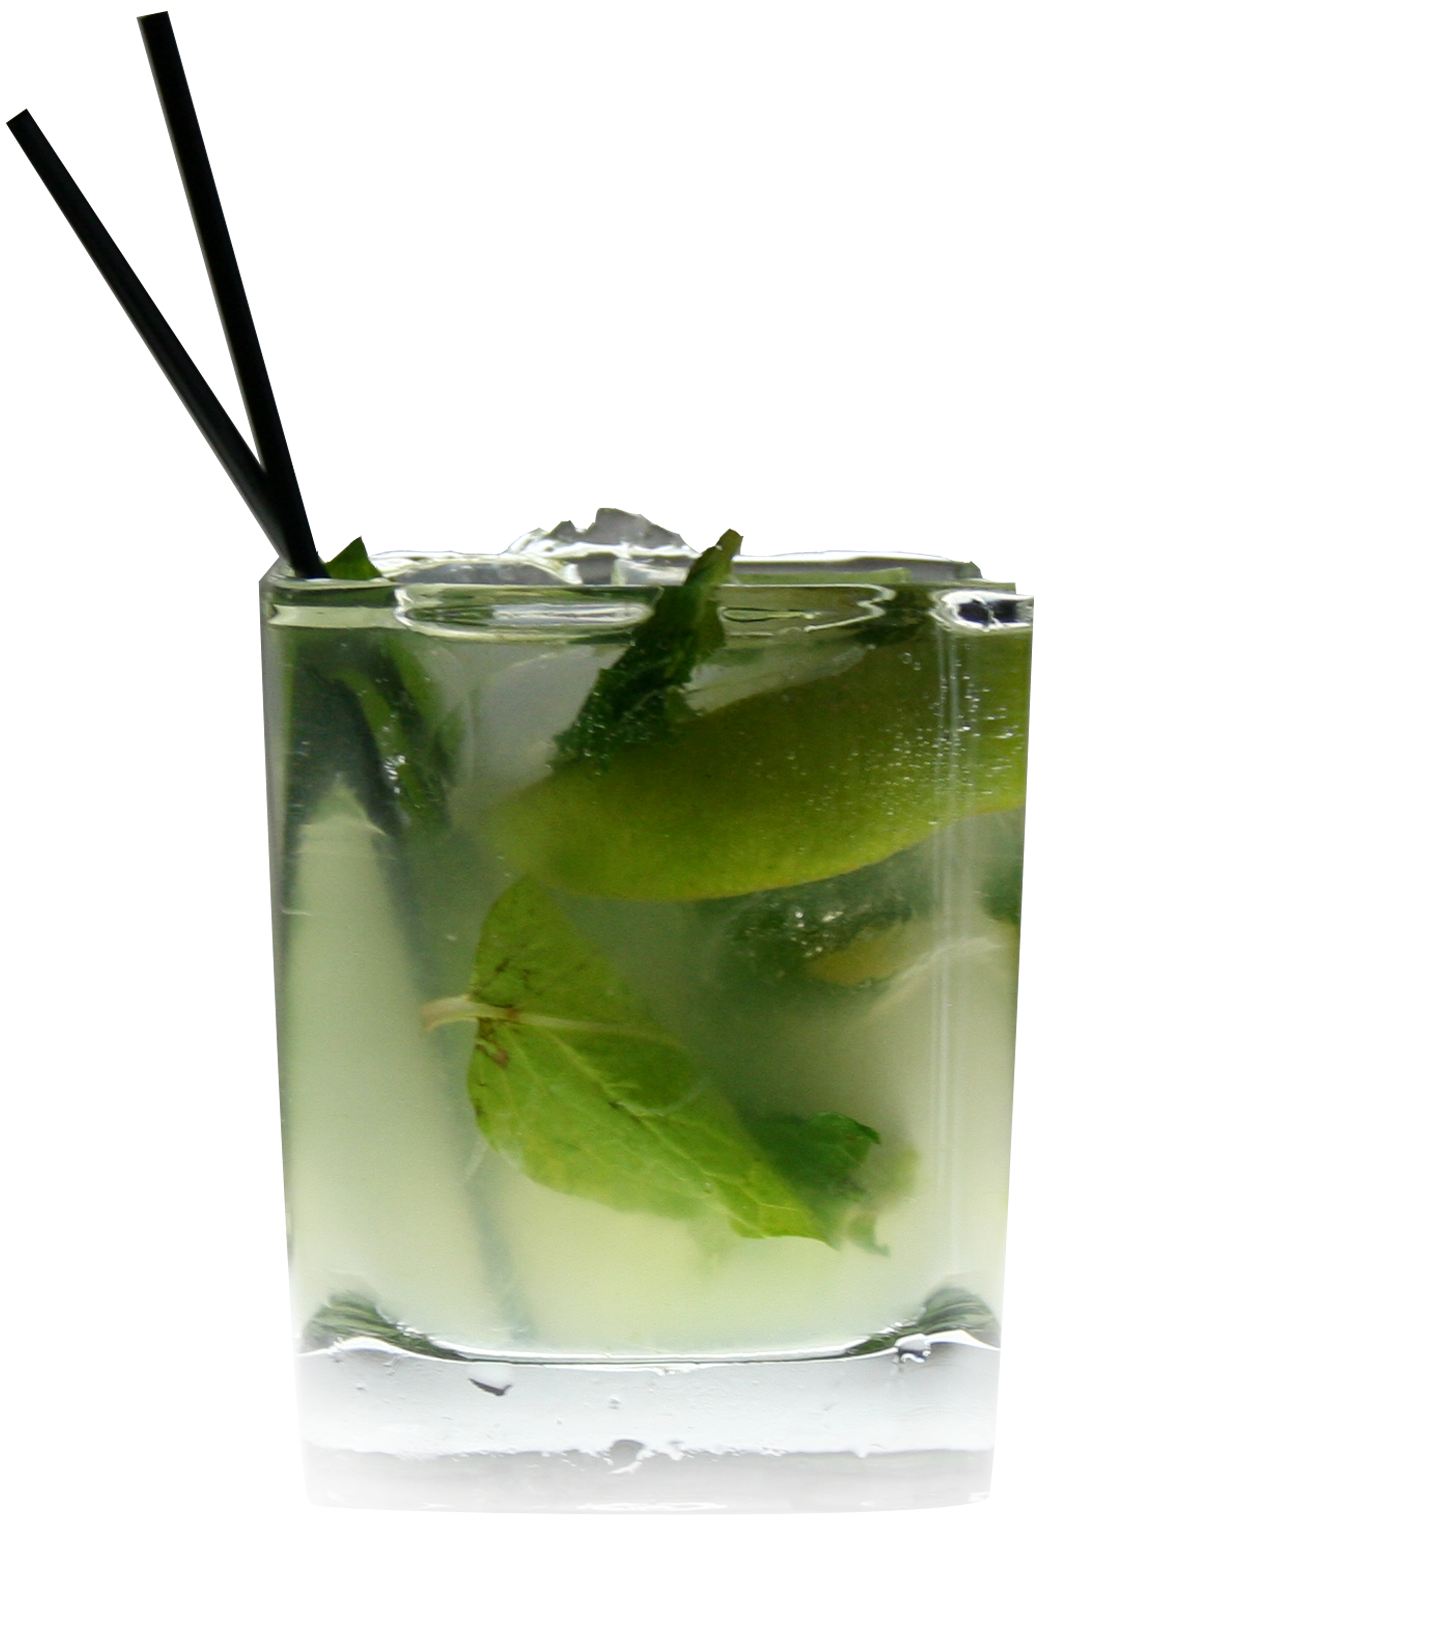 Png image purepng free. Cocktail clipart mojito